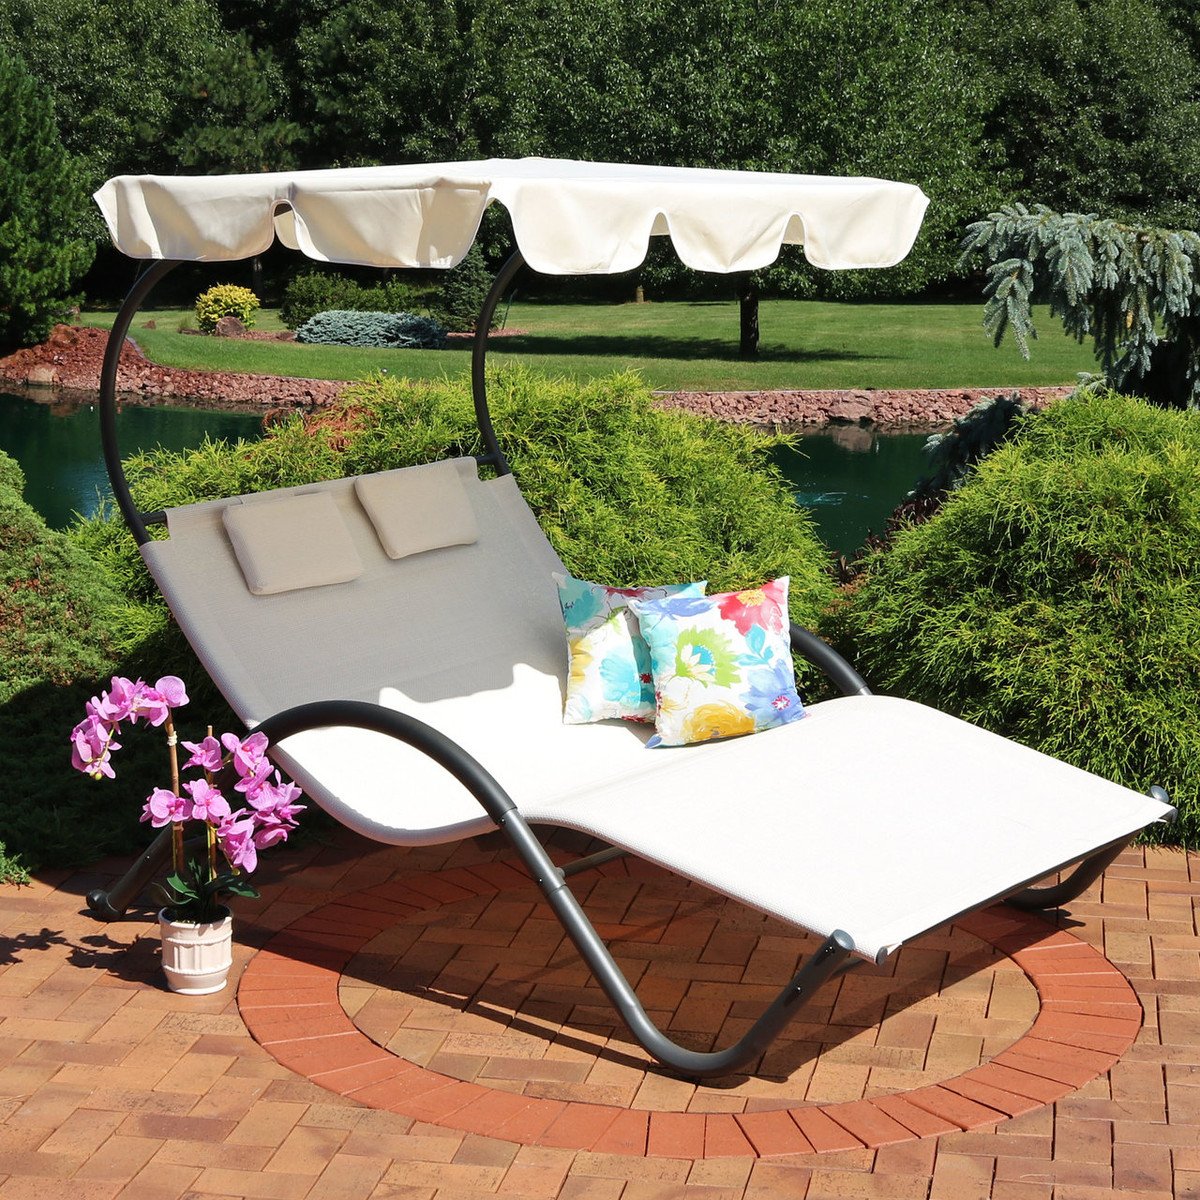 Sunnydaze double chaise lounge with canopy and headrest pillows beige